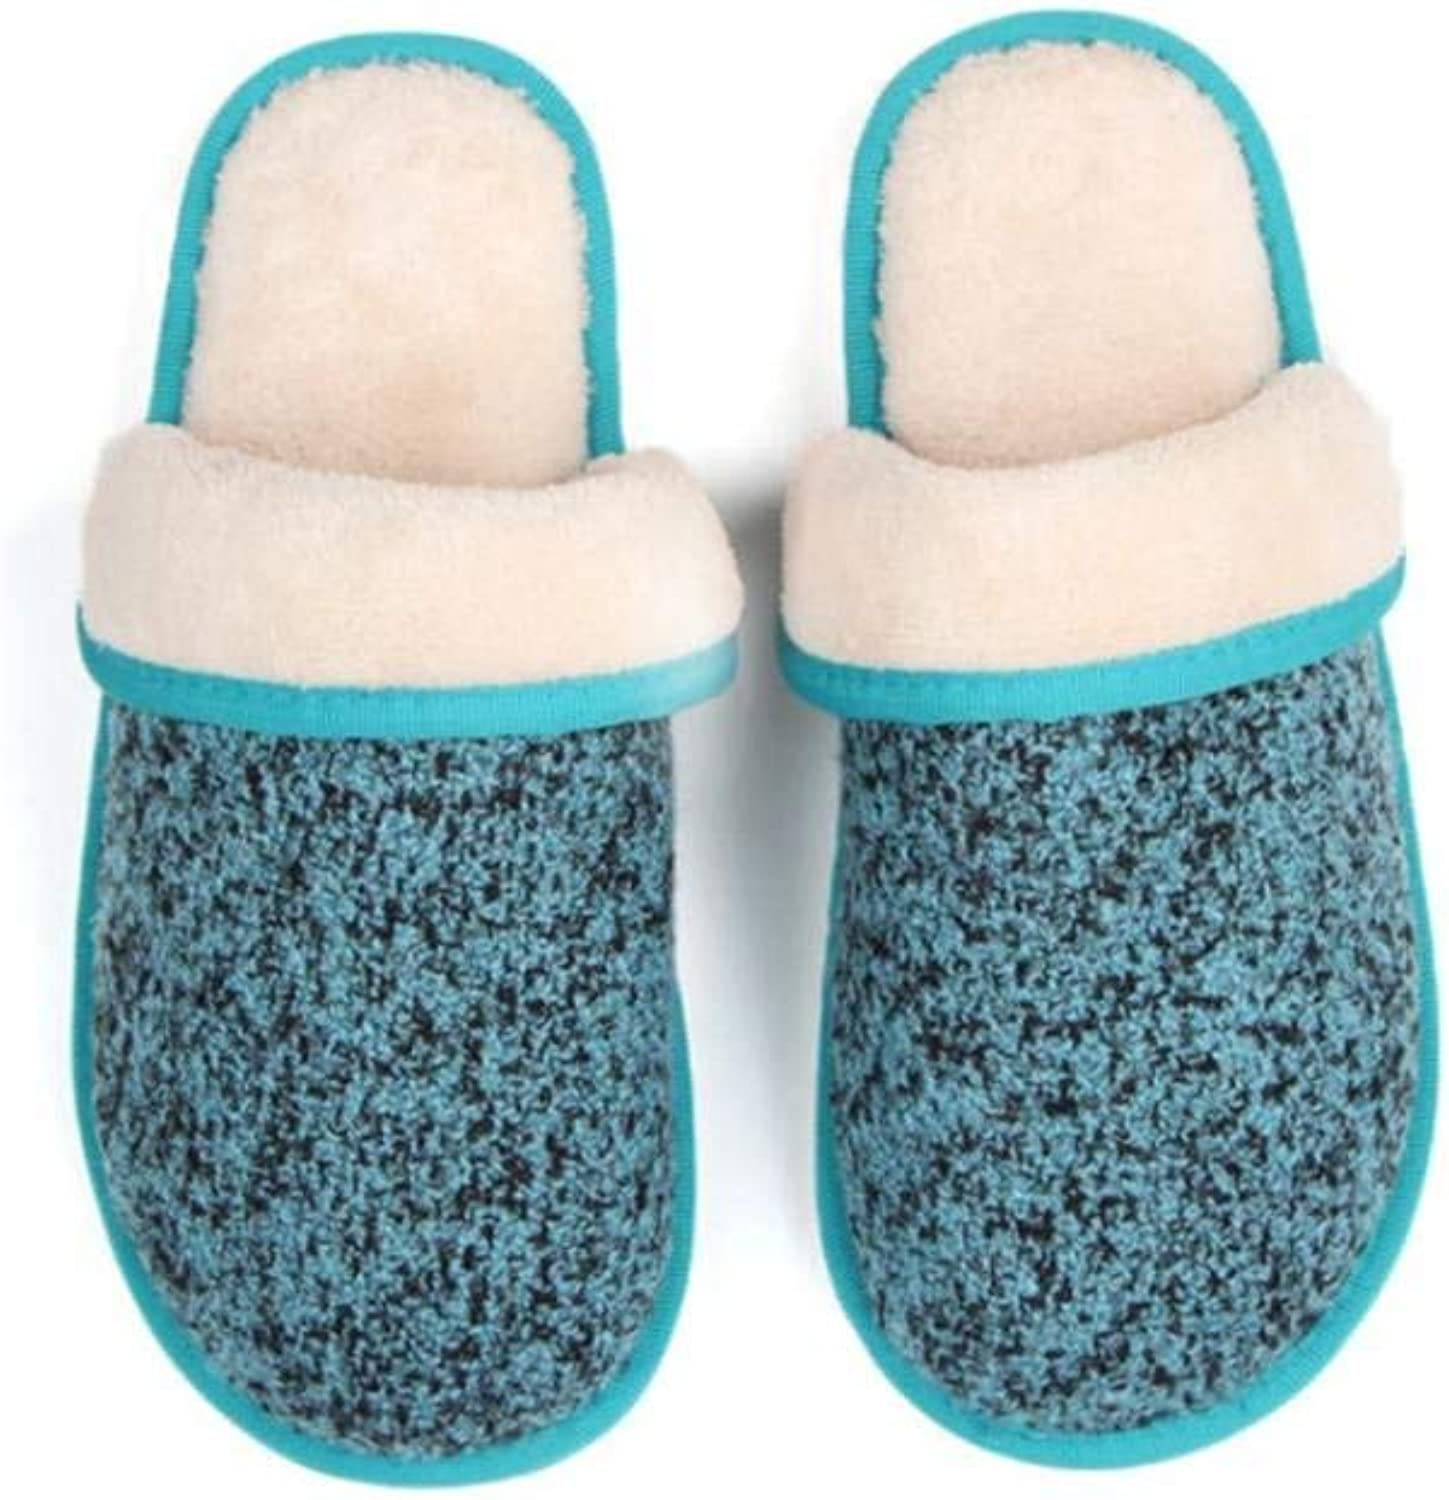 JaHGDU Women Home Slippers Leisure Soft Interior Keep Warm in Winter and Autumn Stylish Classic Household Super Soft Plush Slippers